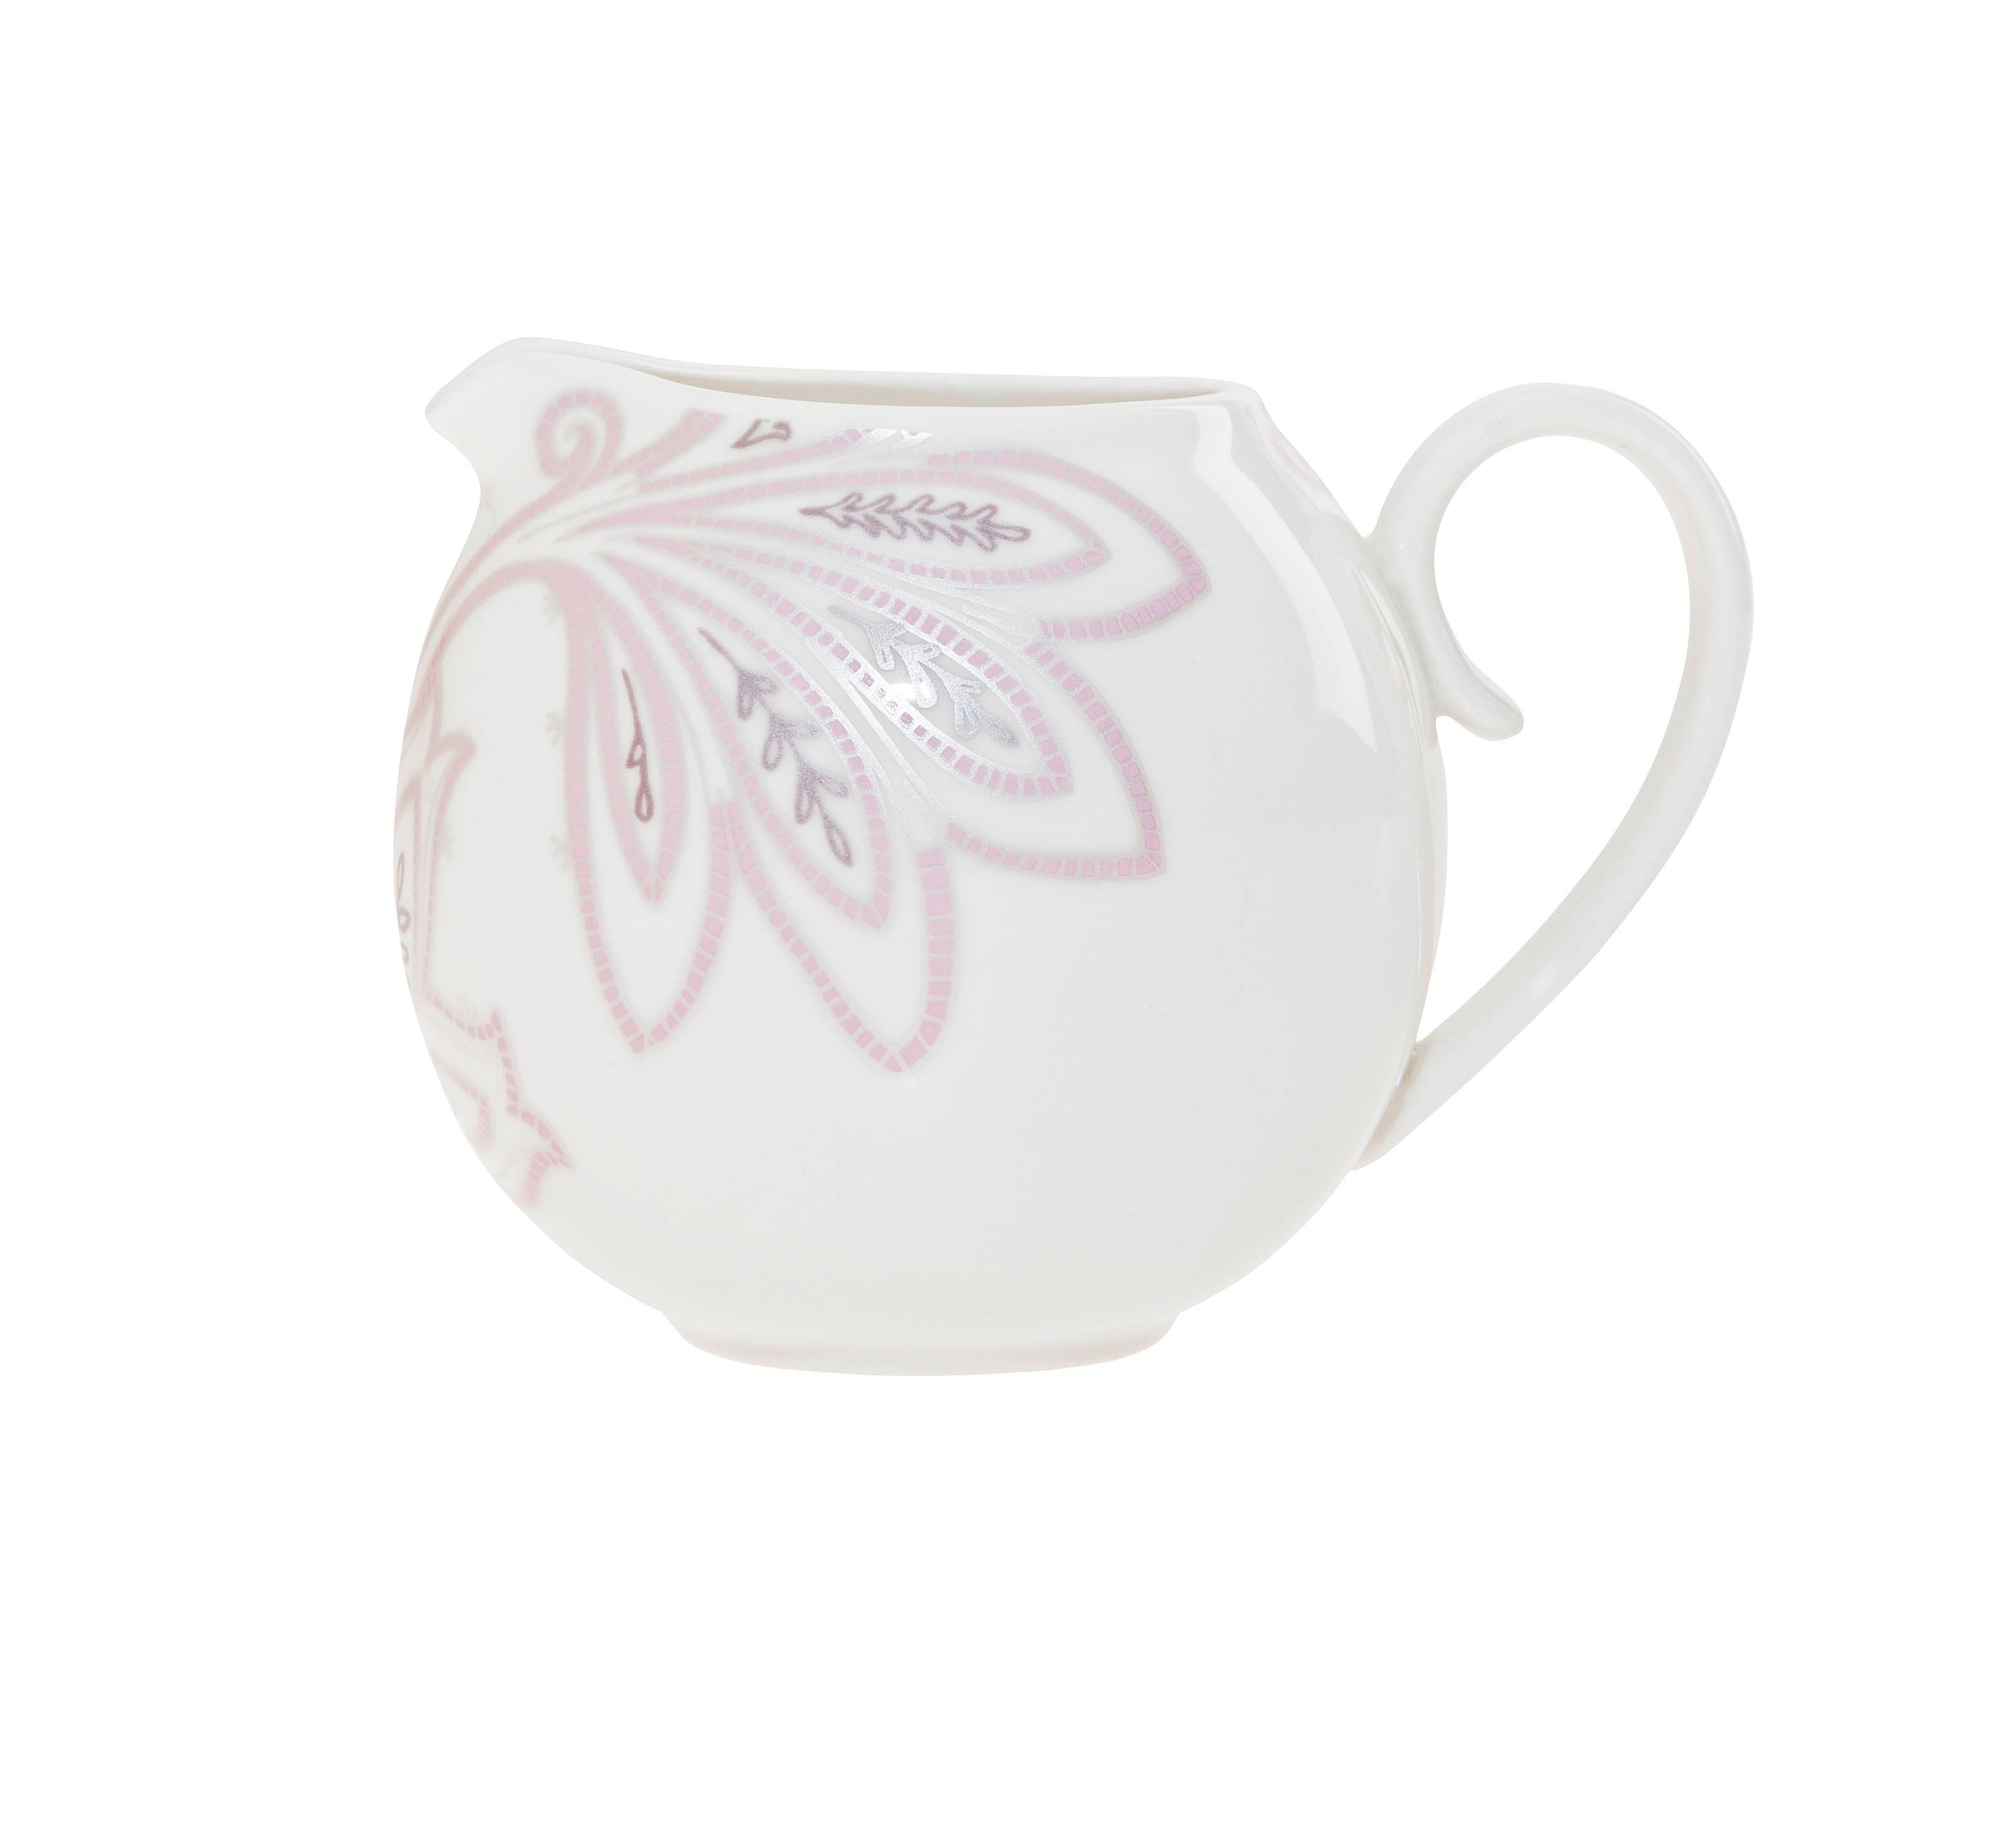 Chantilly small jug